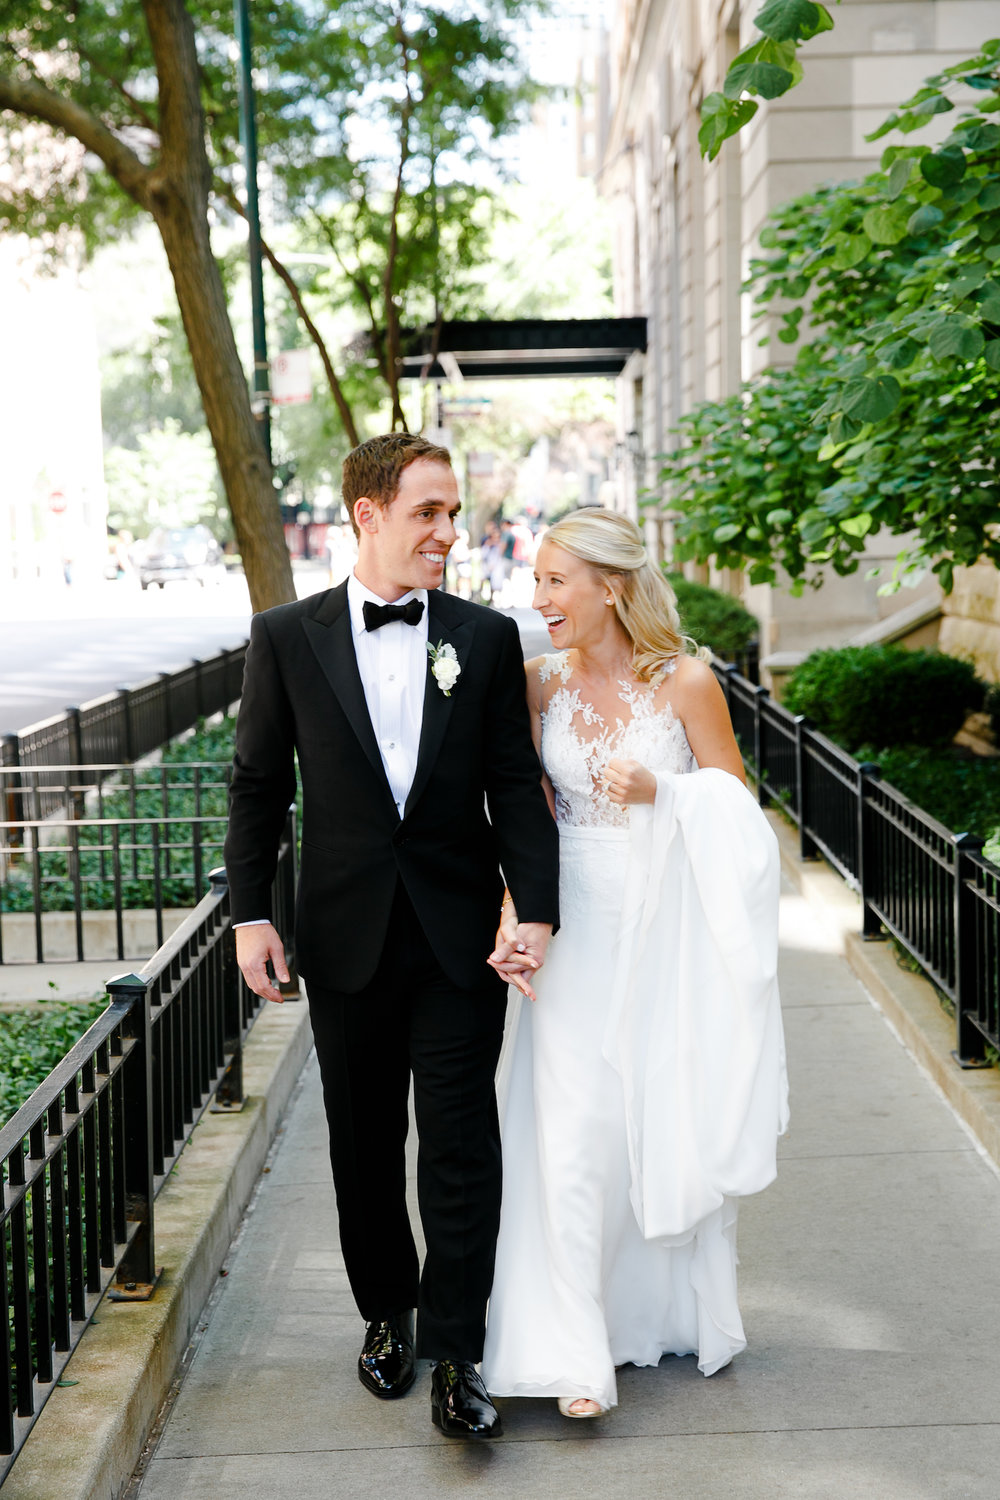 Wedding portraits in Chicago's Gold Coast show off the beauty of the old homes in the neighborhood.